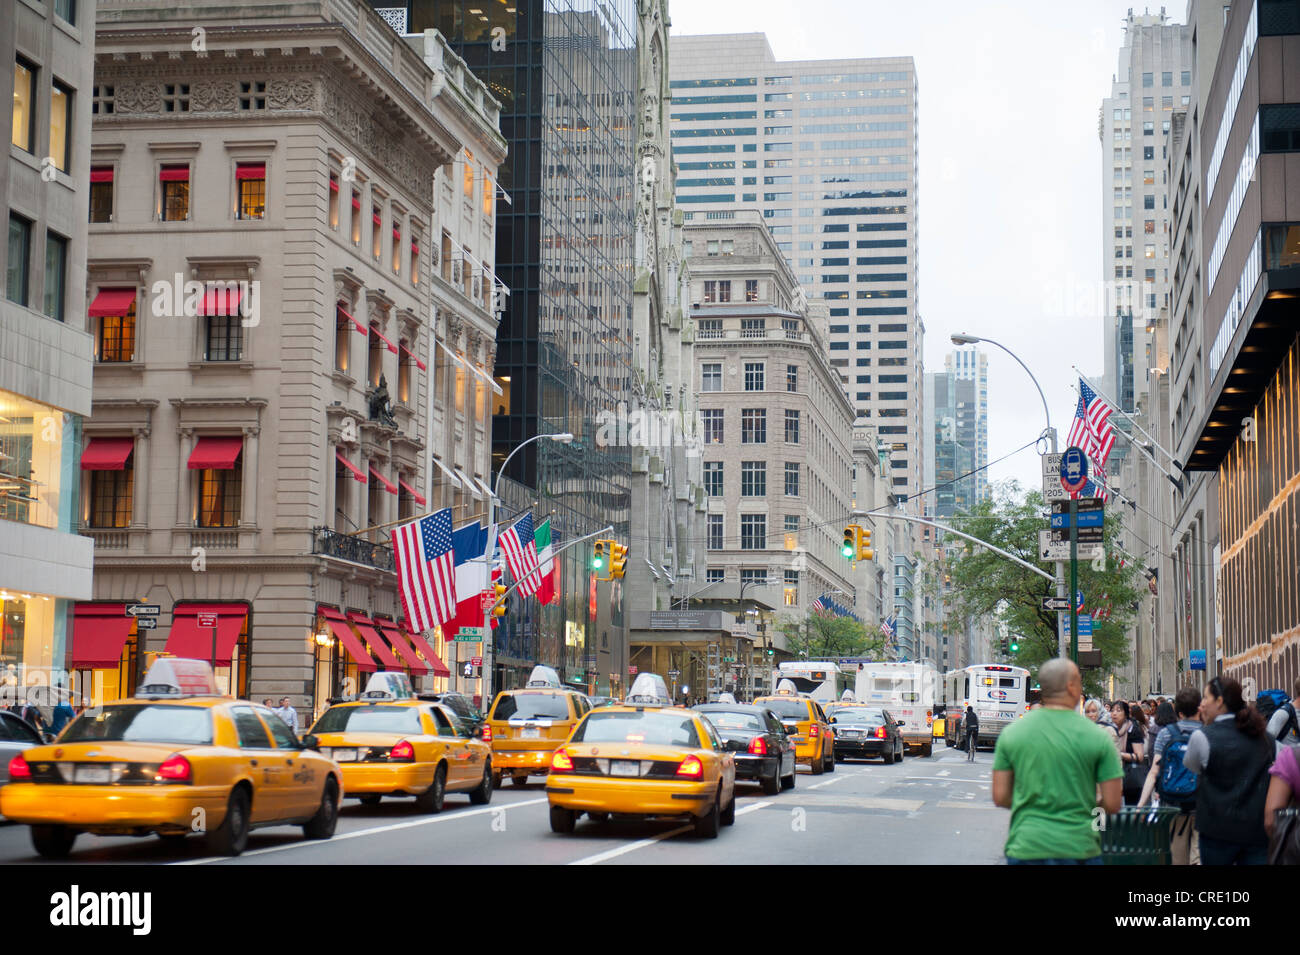 Traffic in the metropolis, yellow cabs, taxis in 5th Avenue, Manhattan, New York City, New York, USA, North America, - Stock Image